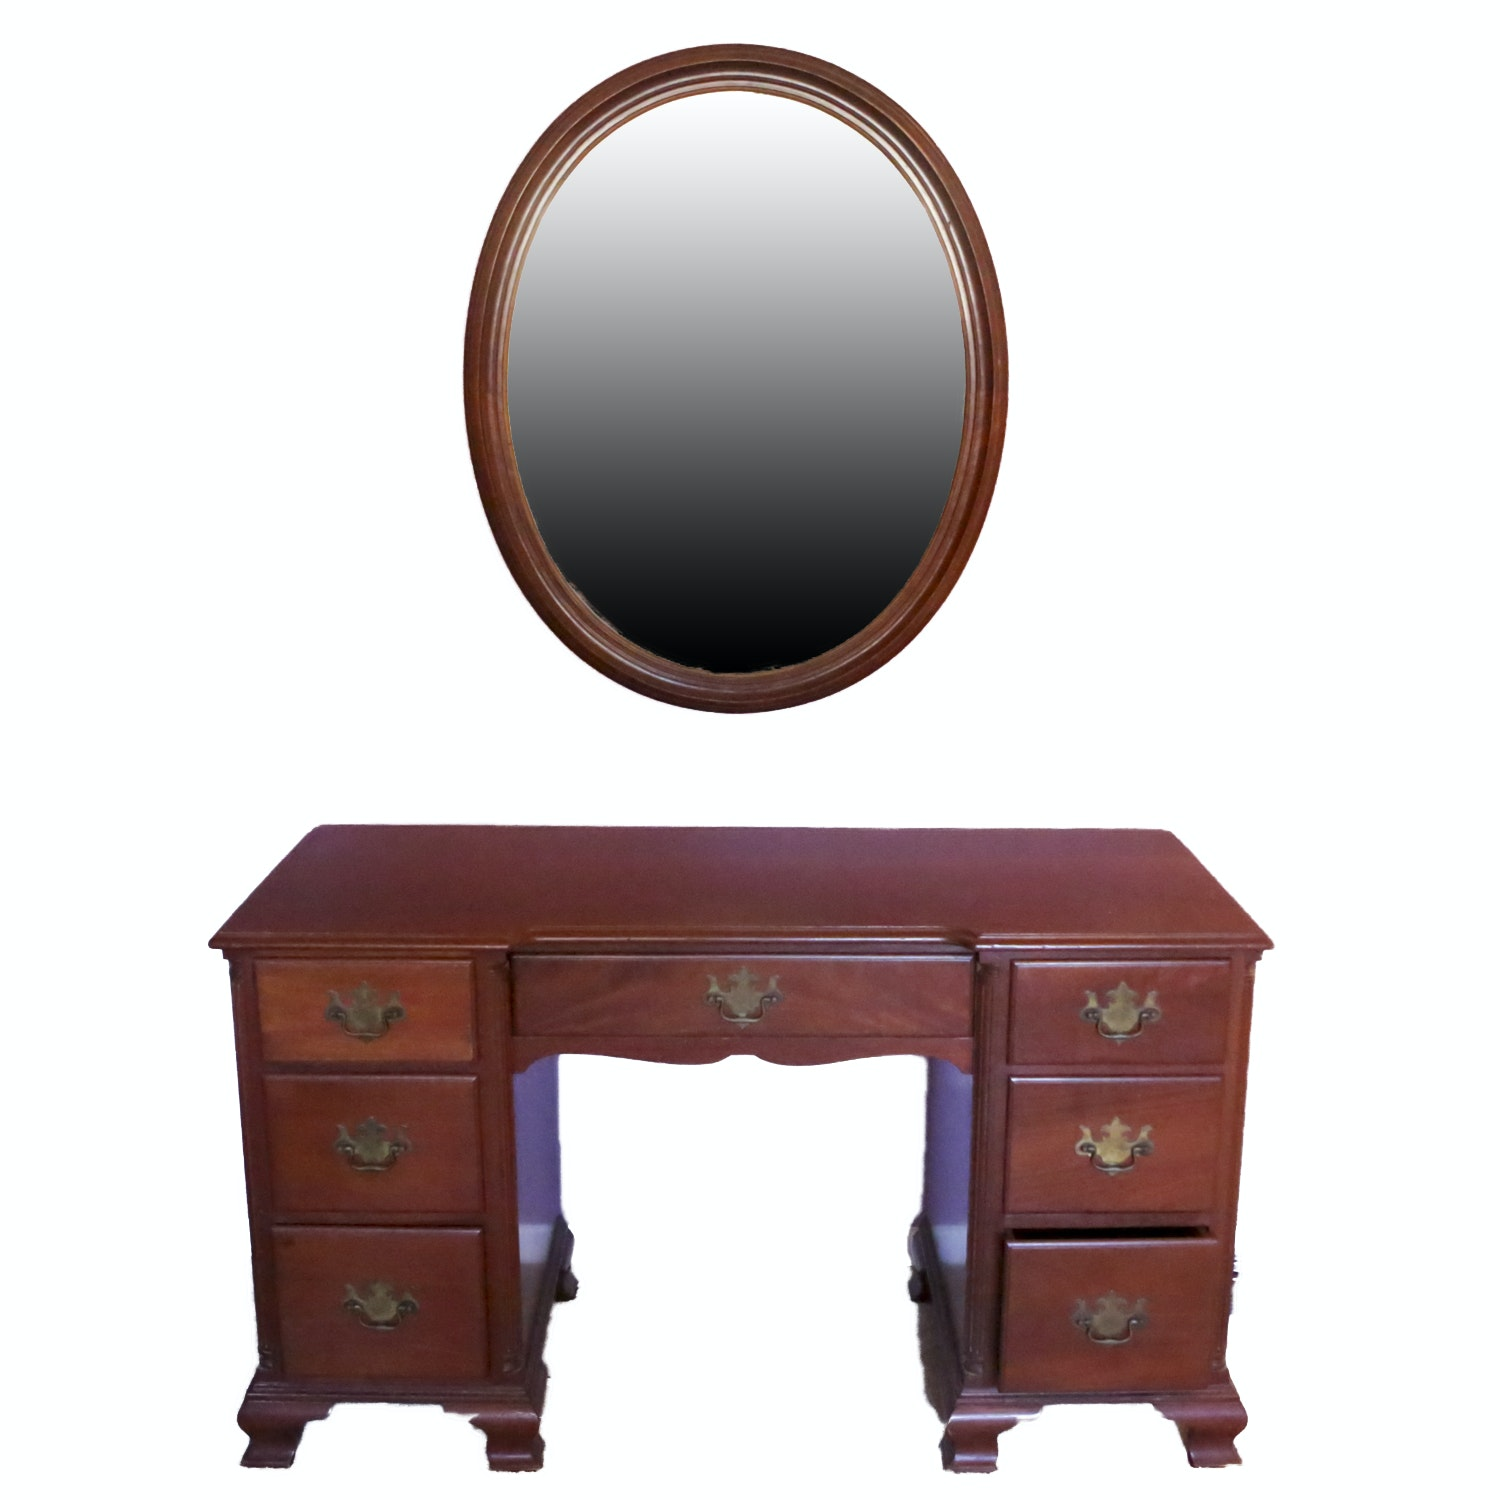 Circa 1960s Early American Style Cherry Double Pedestal Desk and Mirror